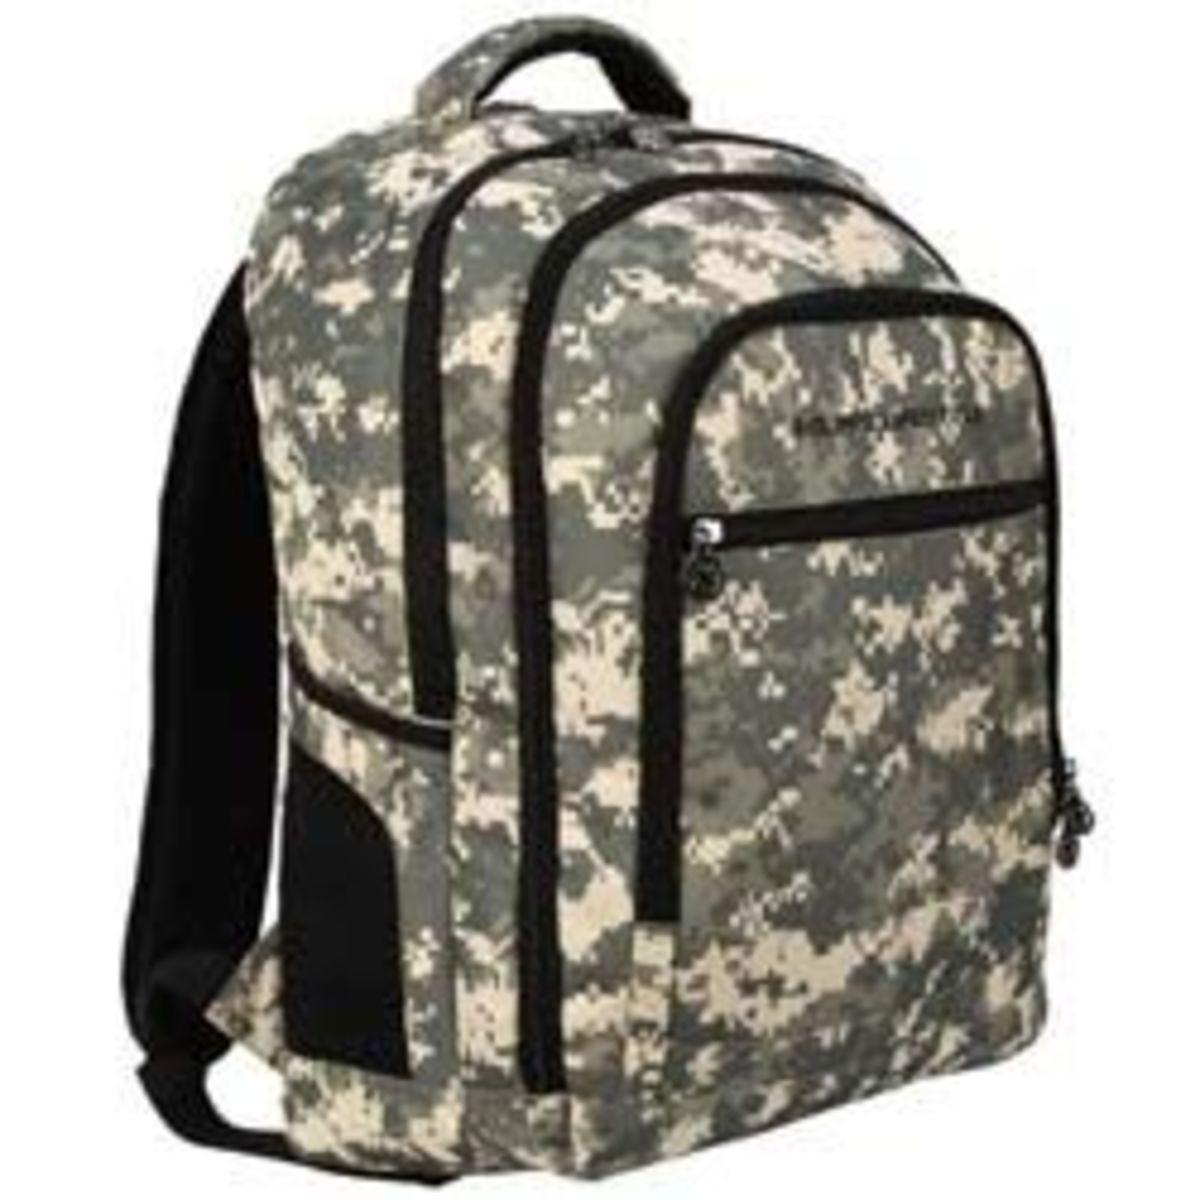 Camouflage Back To School Accessories